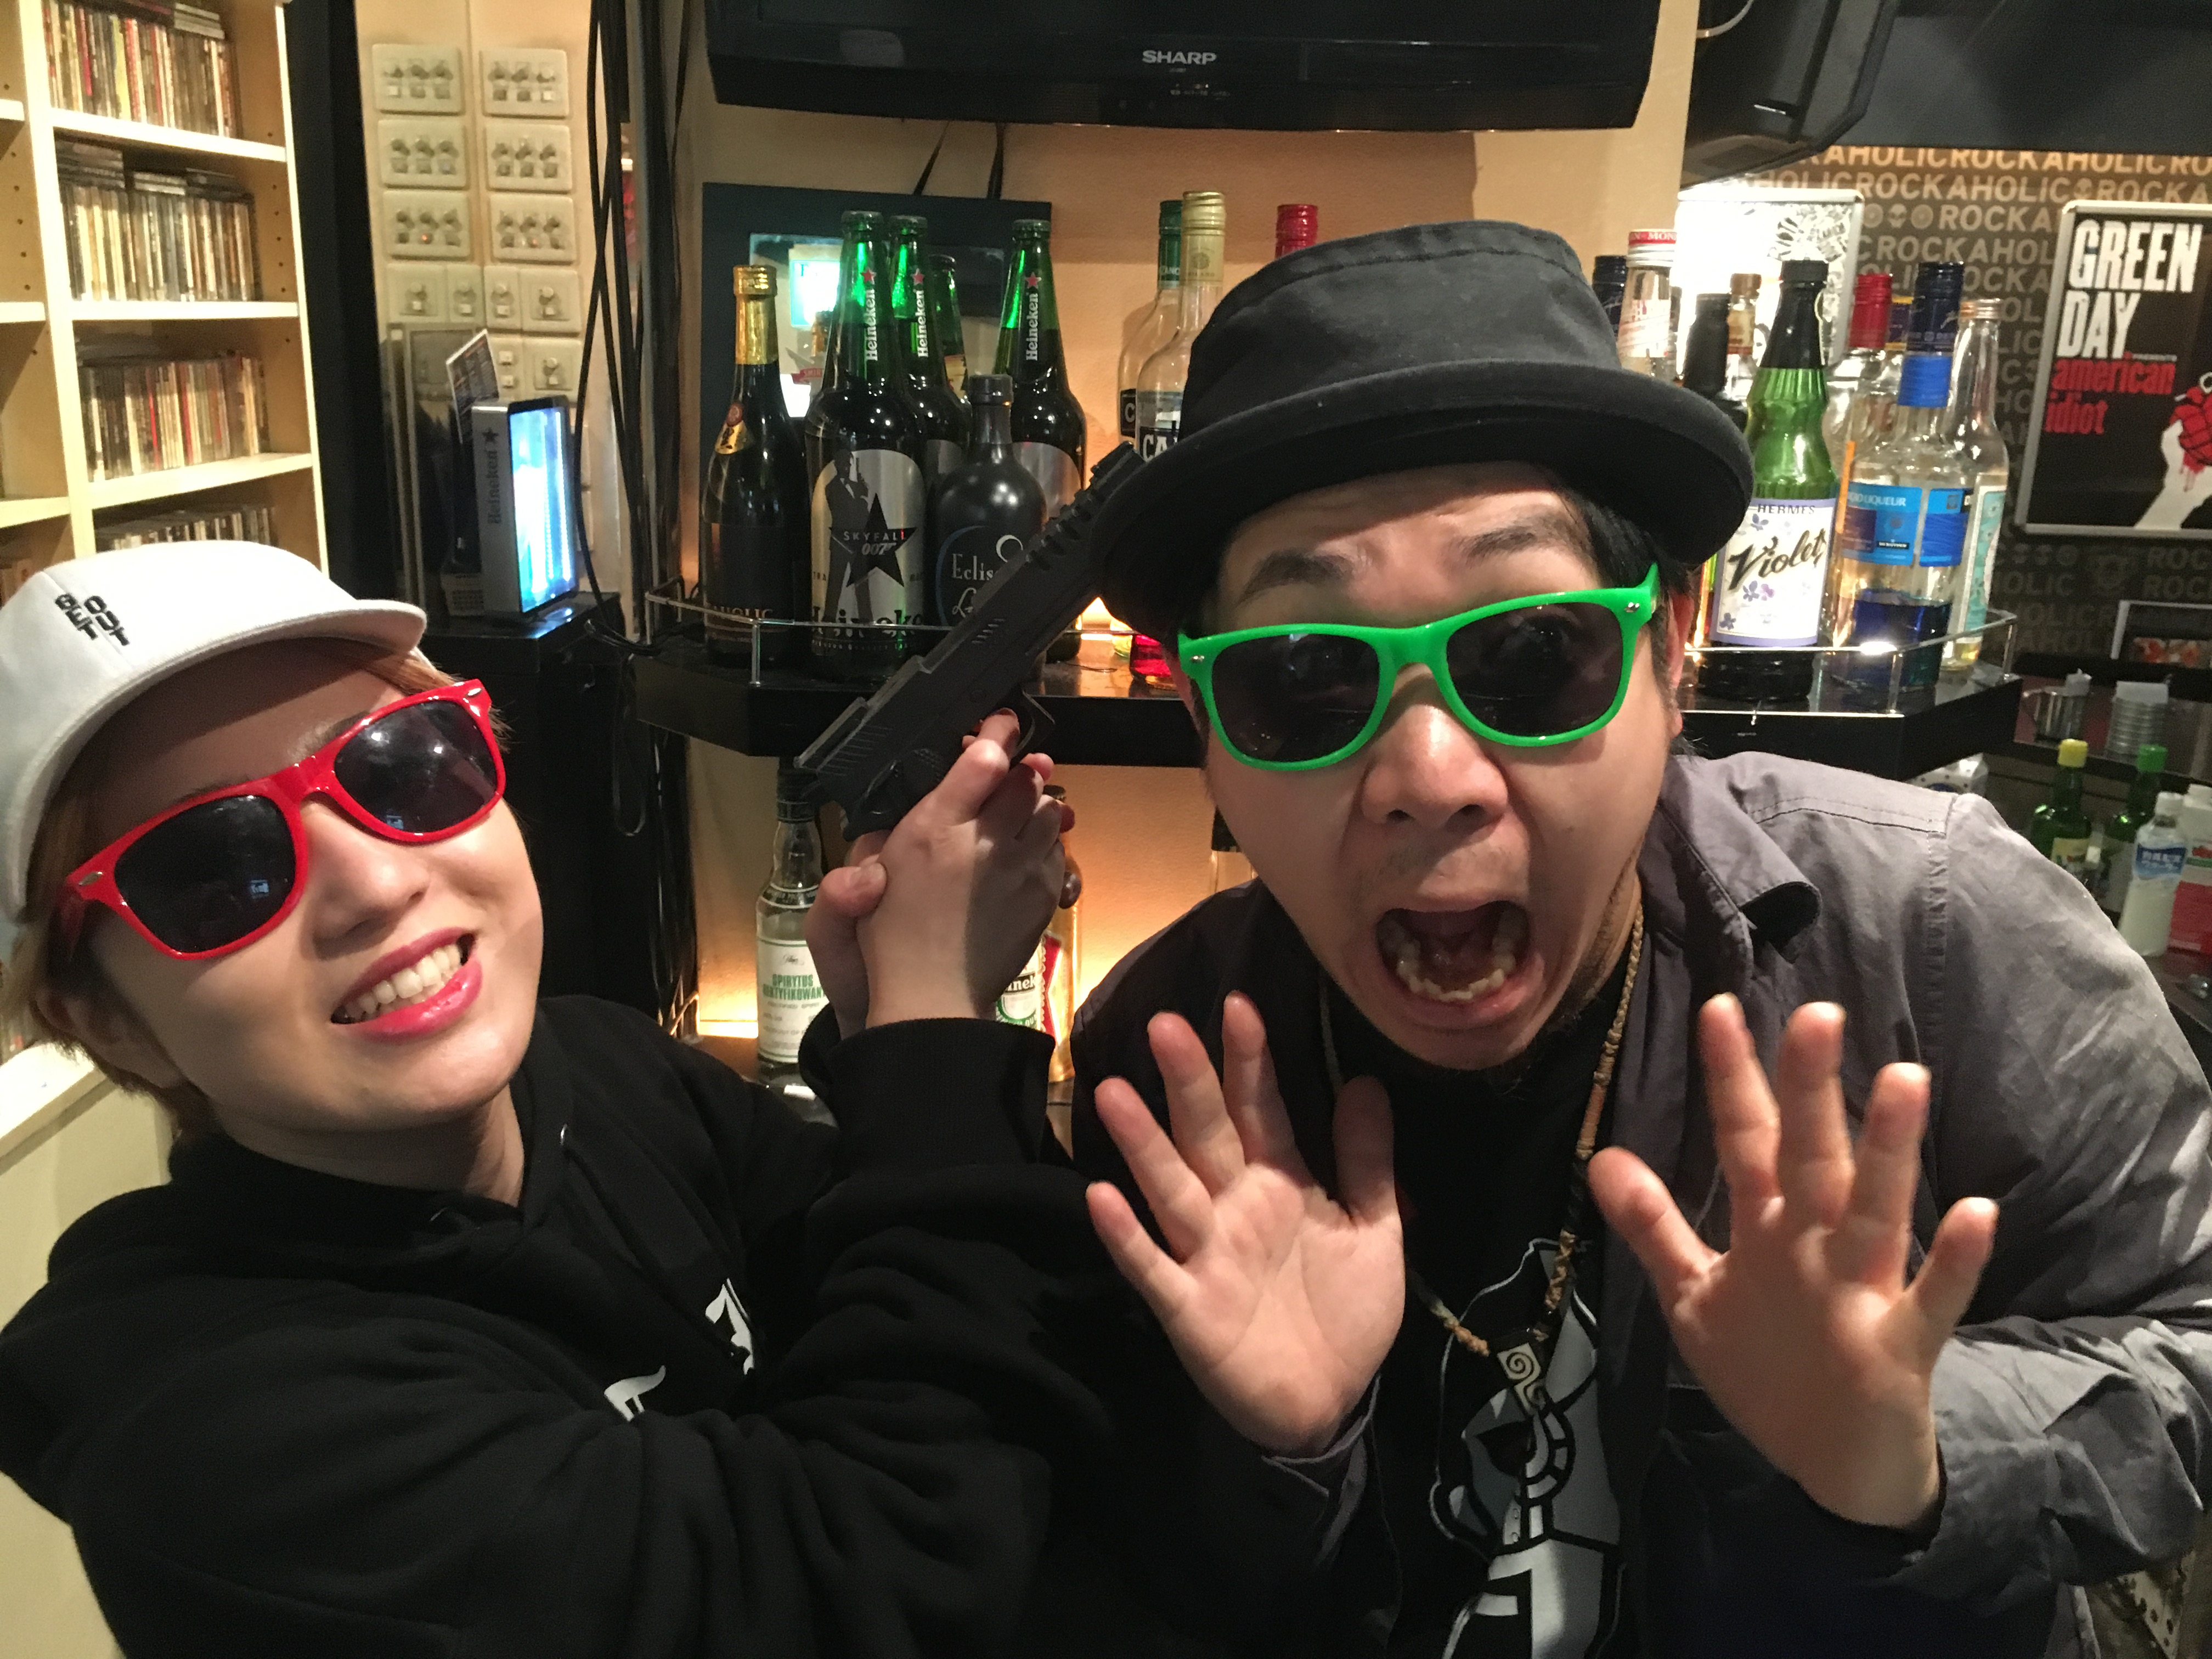 https://bar-rockaholic.jp/shibuya/blog/F0CAF47A-989E-4BB5-BC08-02CDF8A8DB5E.jpeg